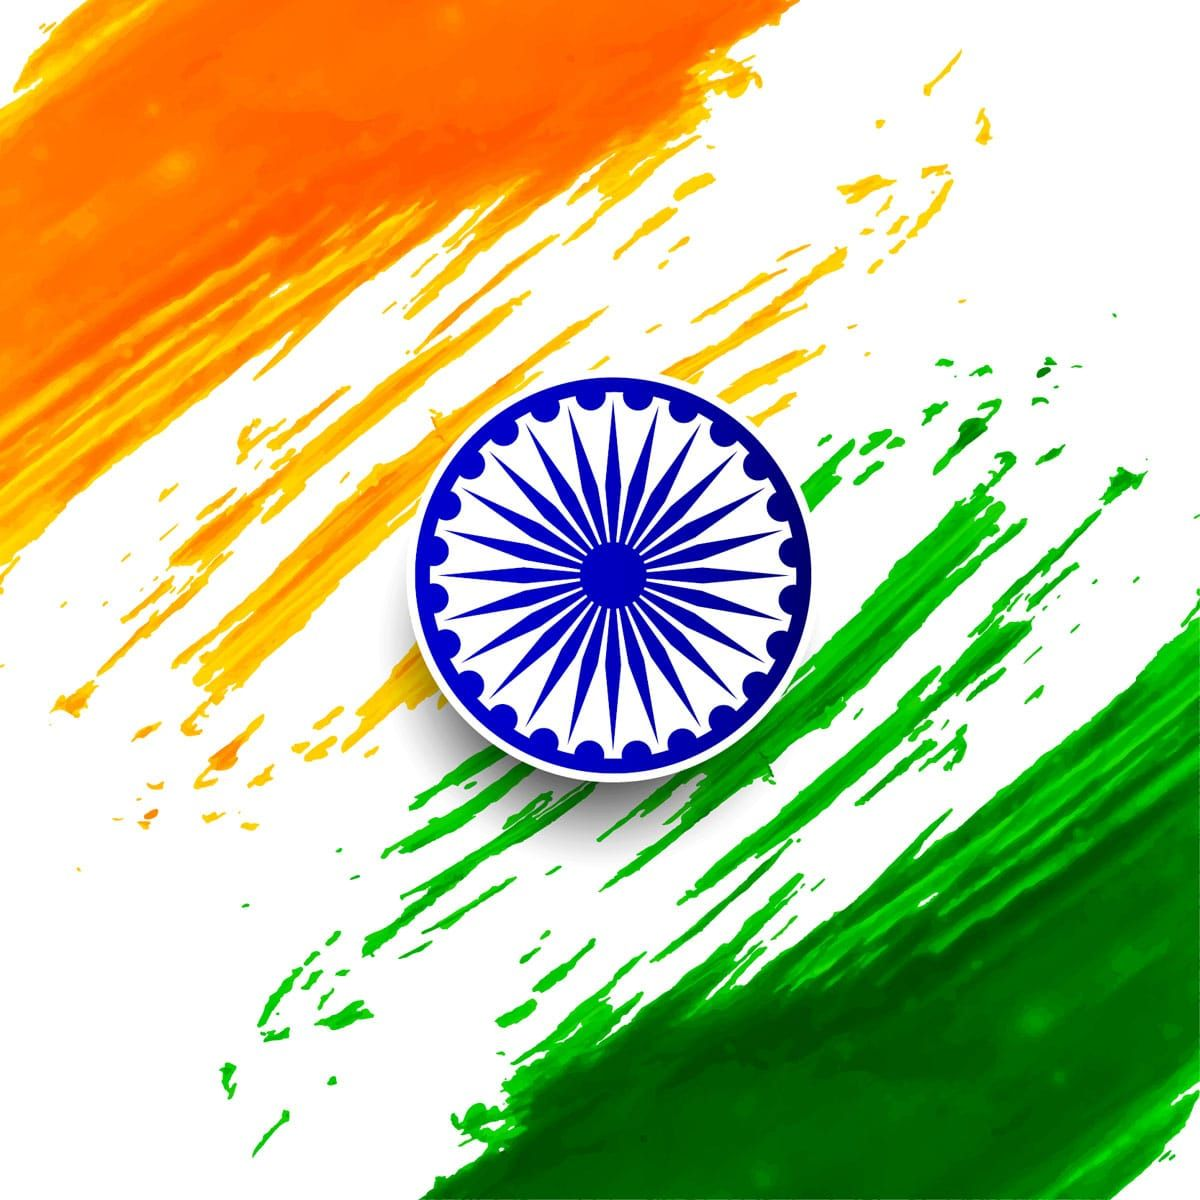 indian flag hd images | indian flag | pinterest | indian flag, hd